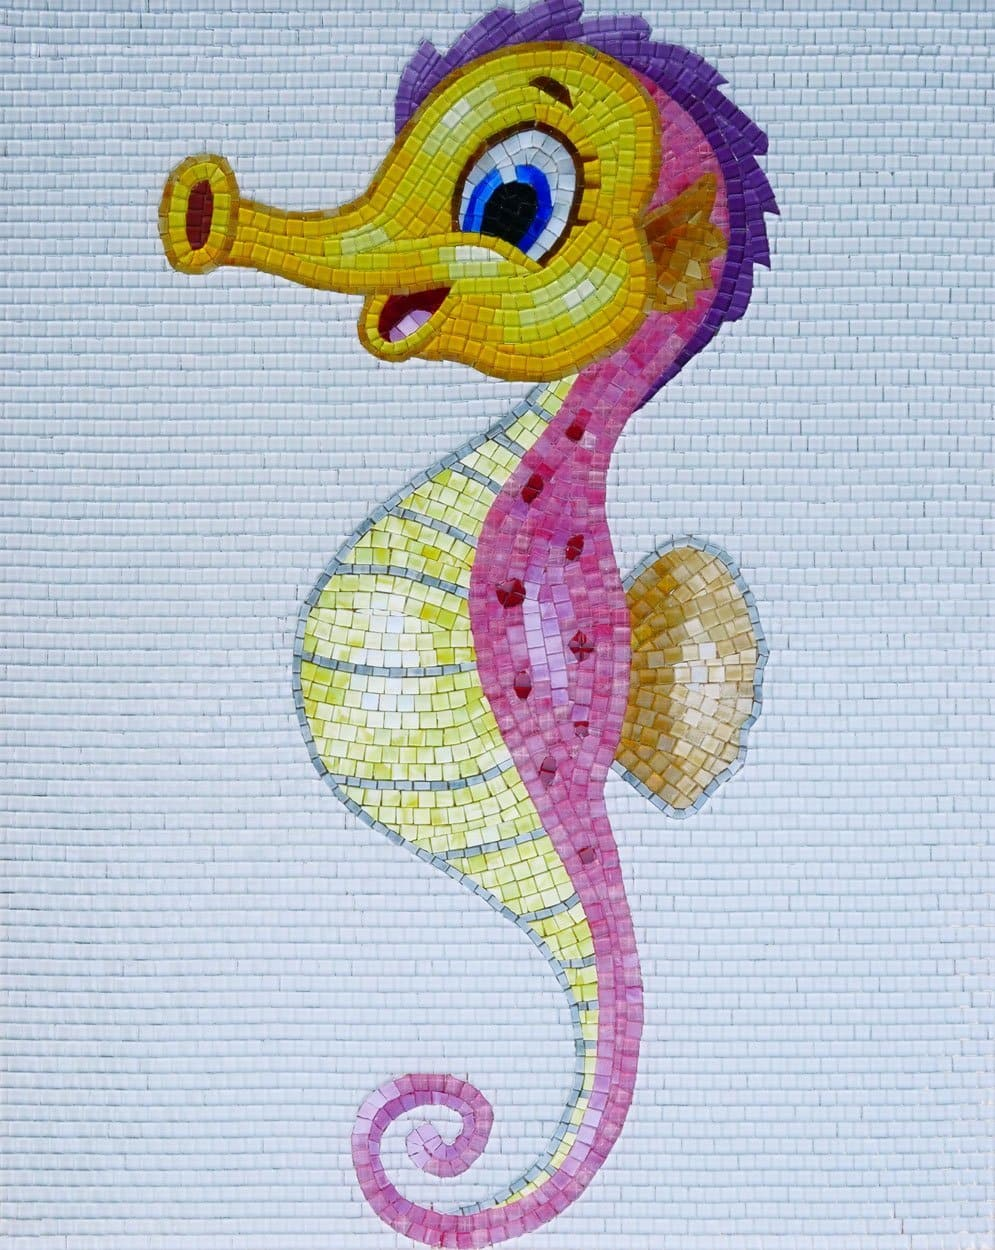 Gregory The Seahorse Comic Mosaic Pic